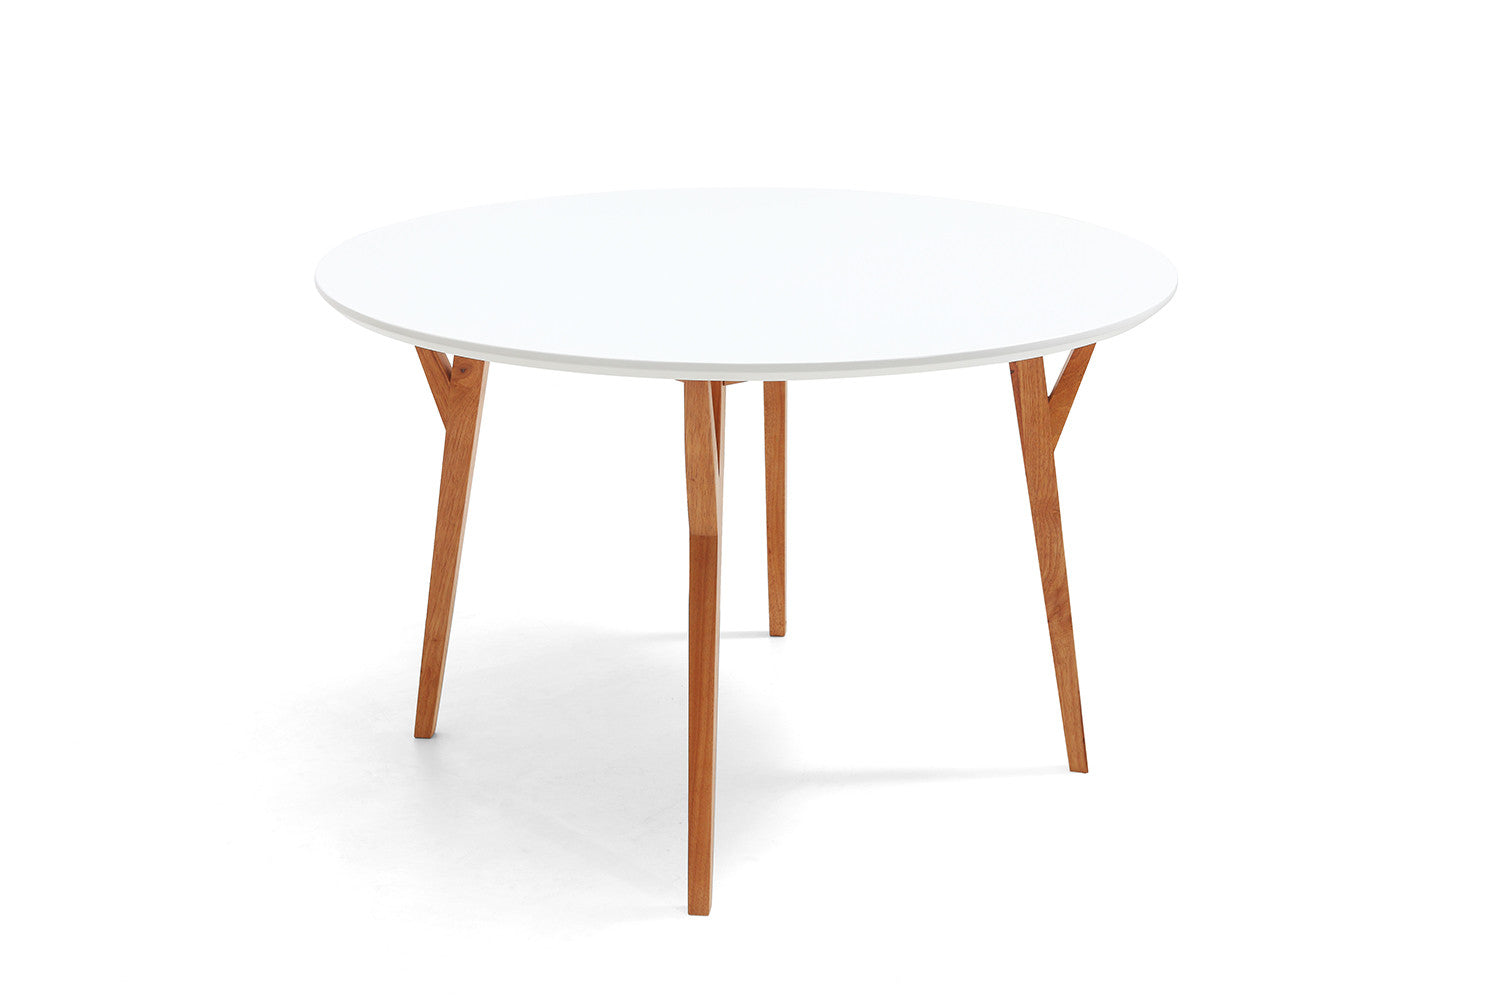 Table de salle manger ronde design scandinave moesa for Table a manger blanche et bois